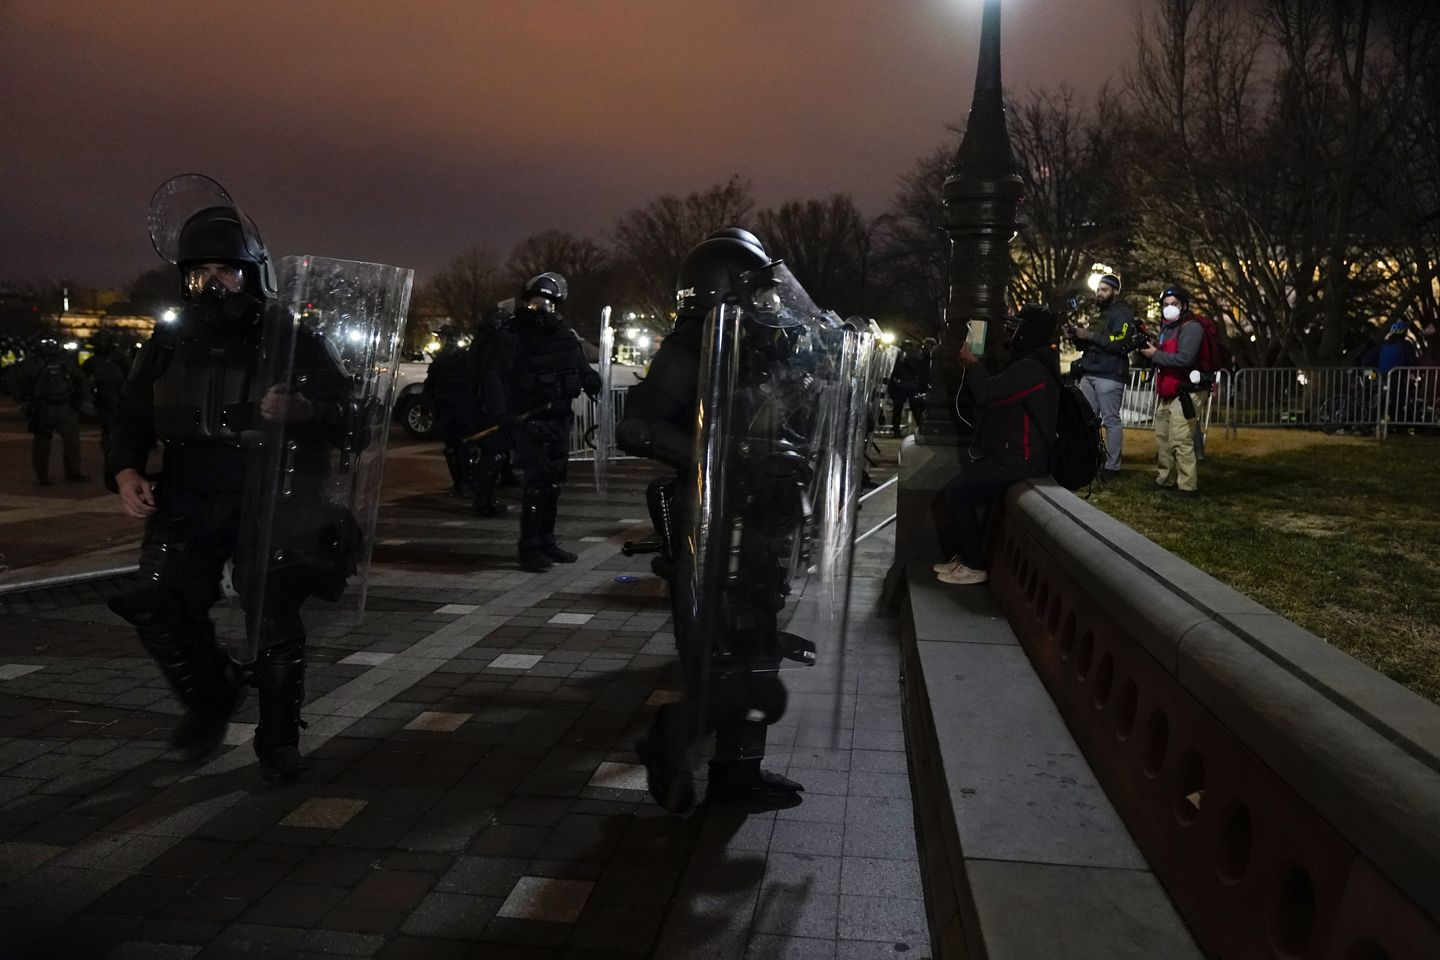 D.C. mayor: People in security perimeter for inauguration to be questioned